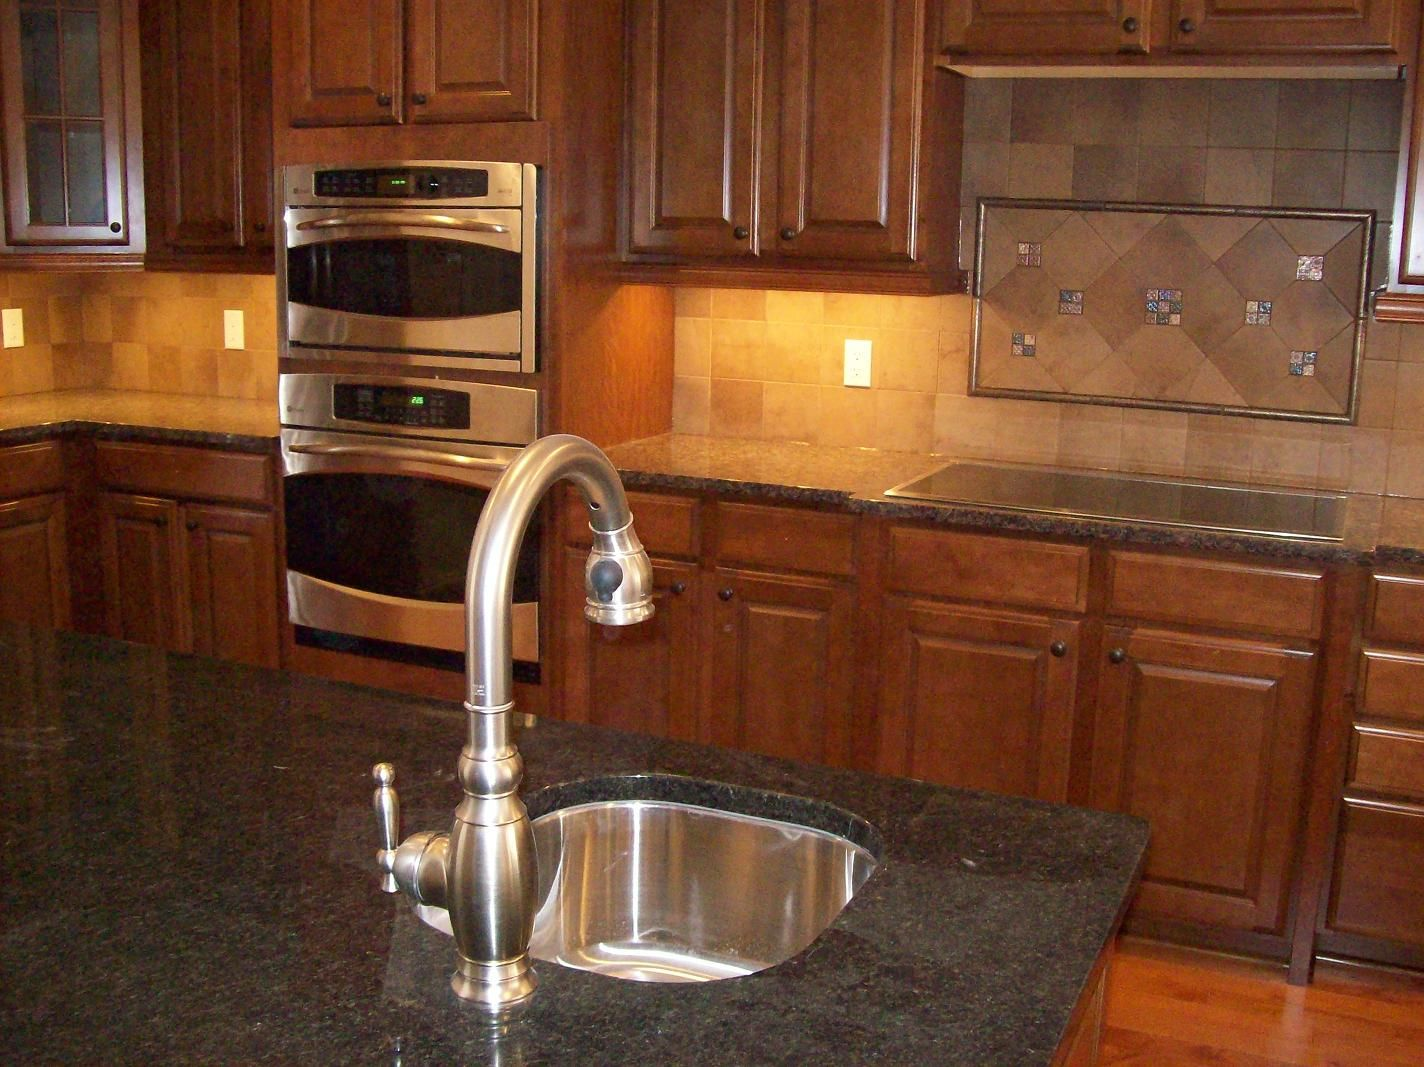 10 Simple Backsplash Ideas For Your Kitchen Backsplash Ideas View 9